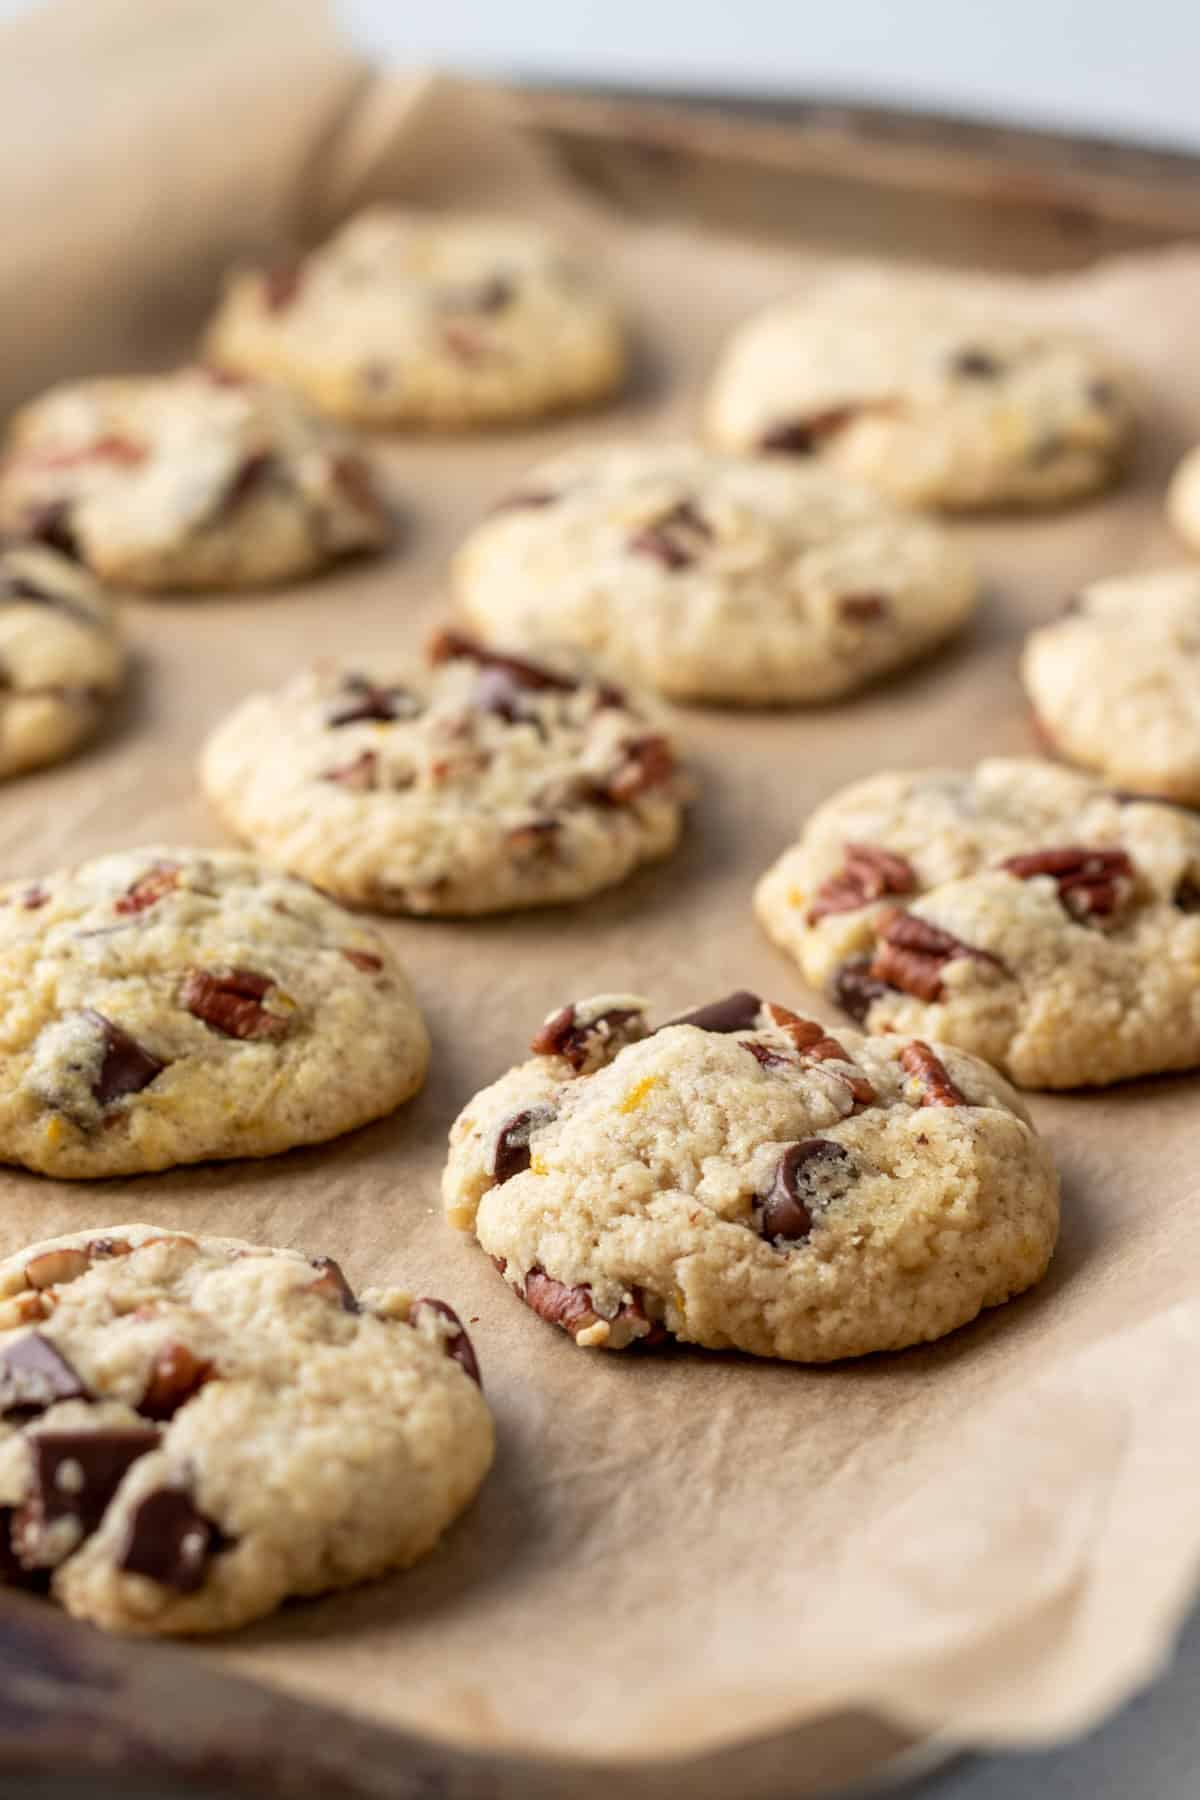 chocolate chunk cookies on a parchment-lined baking sheet.